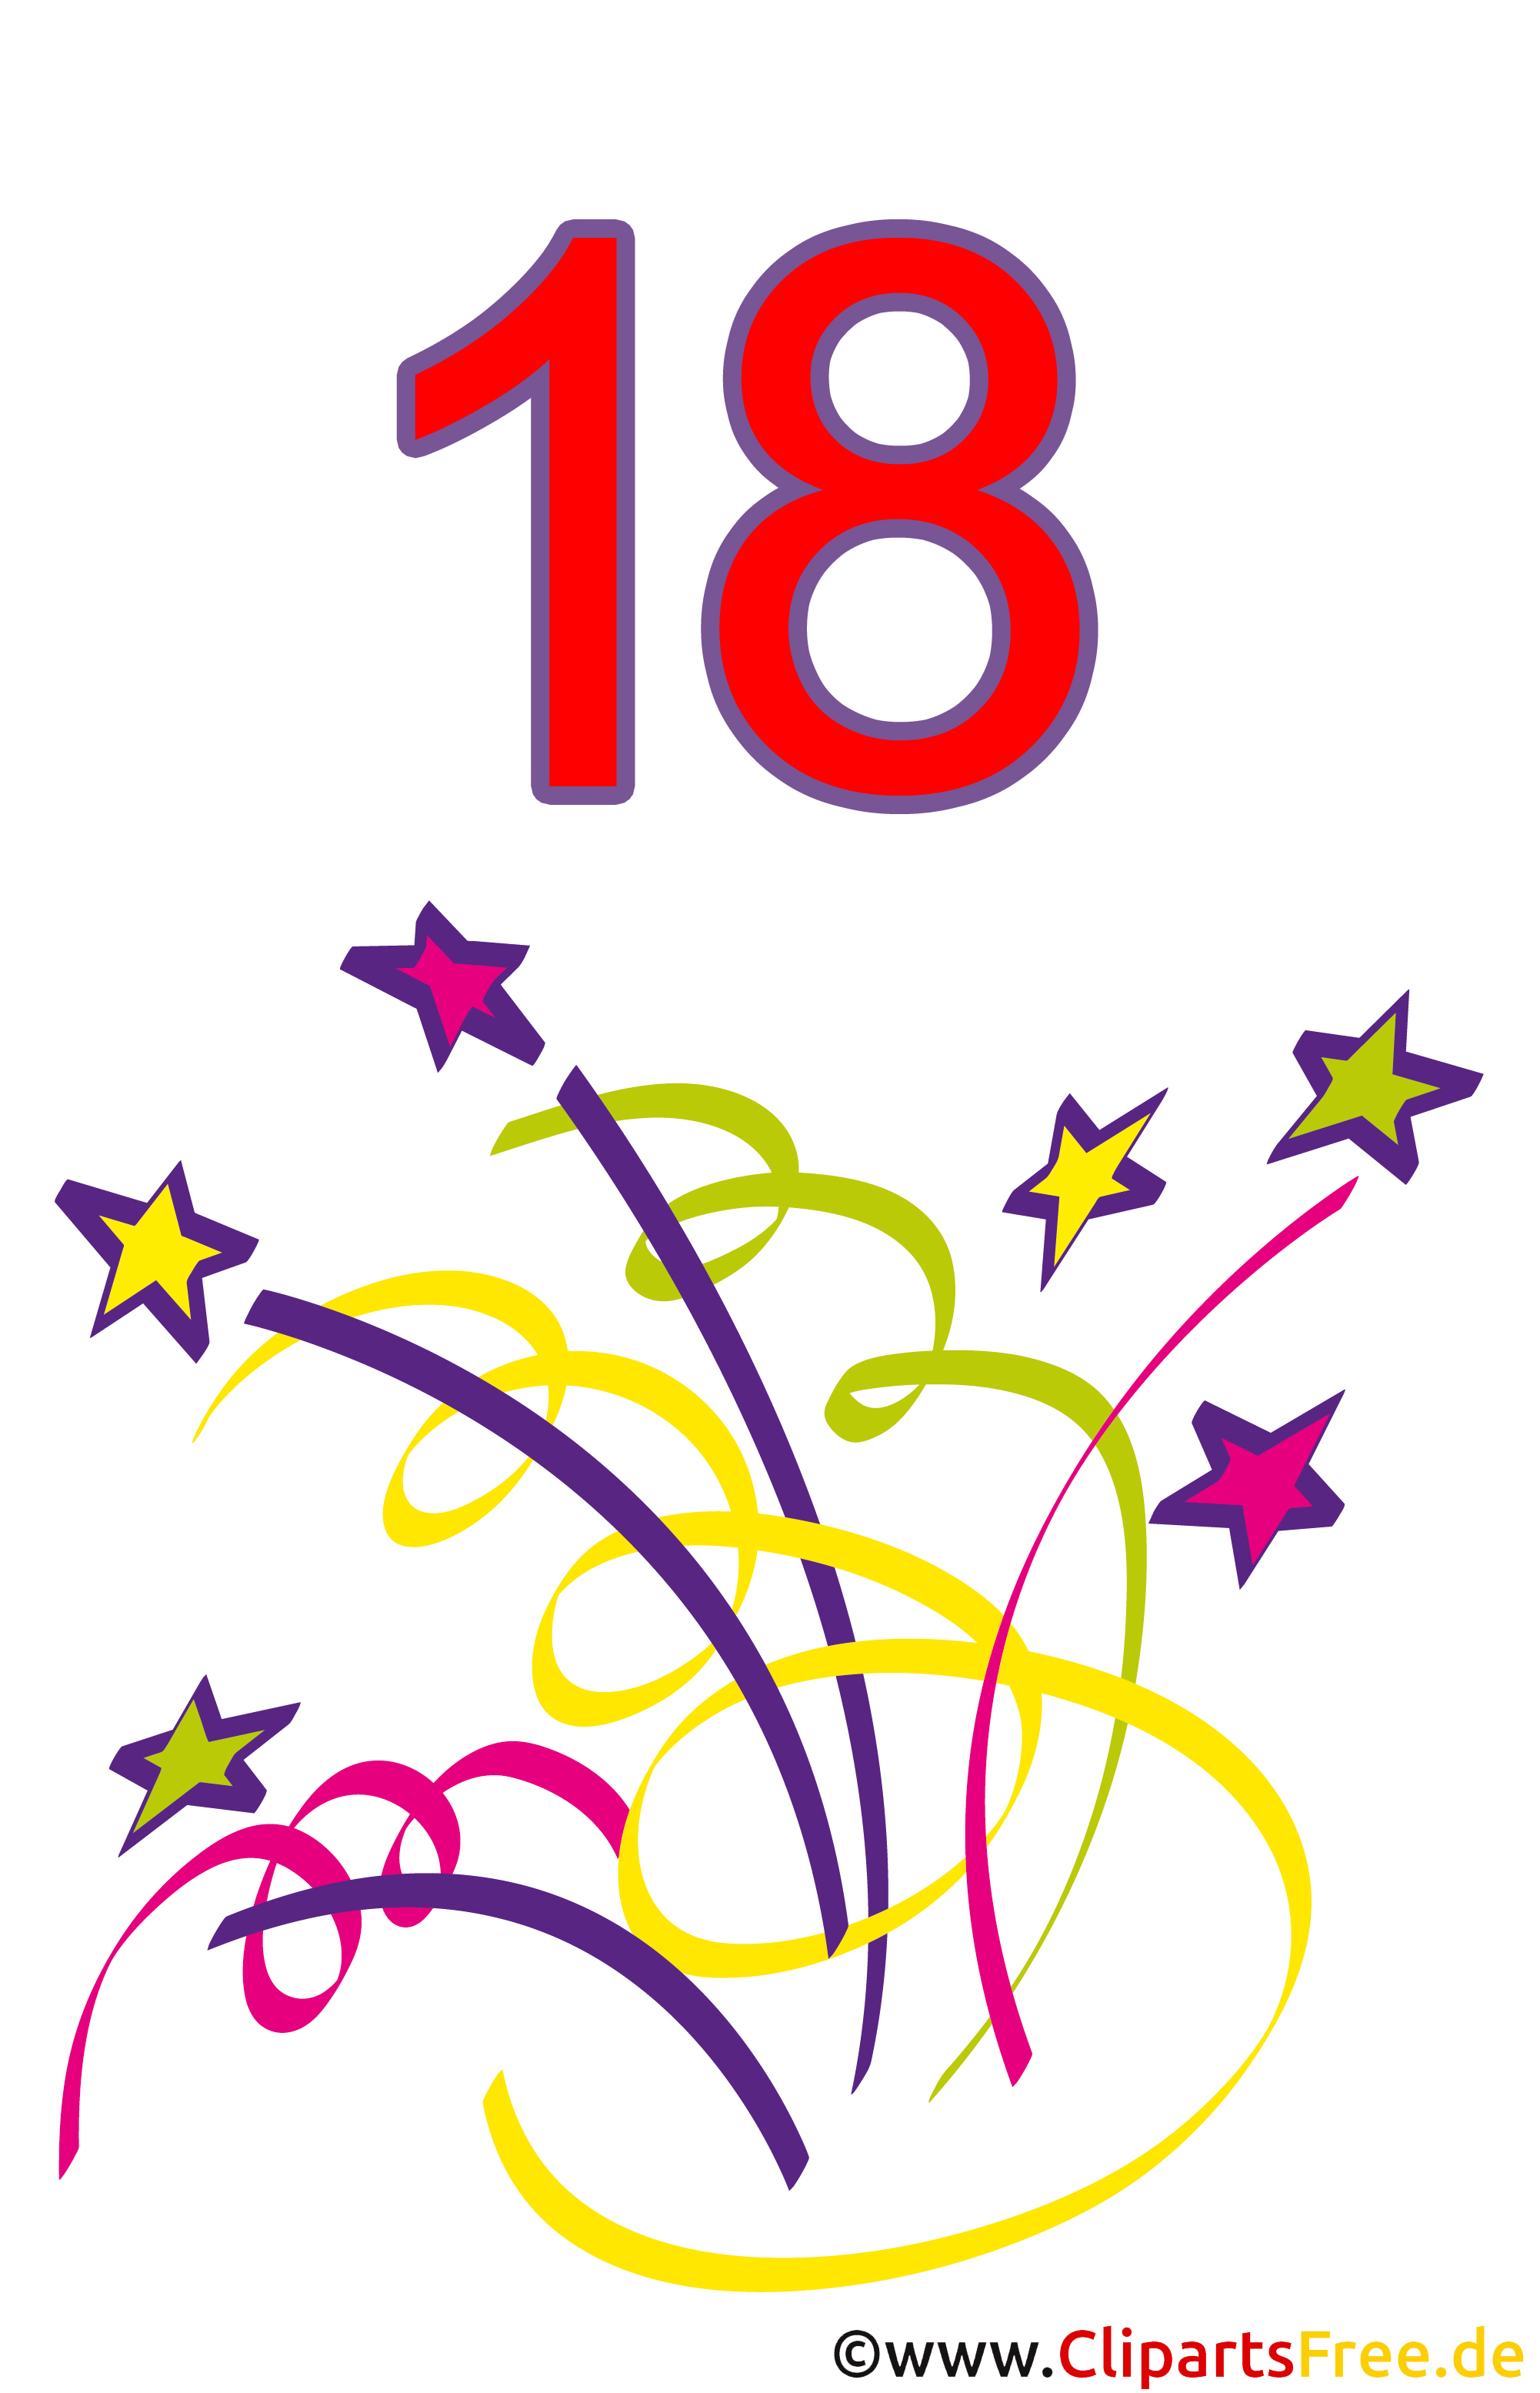 clipart geburtstag - photo #17